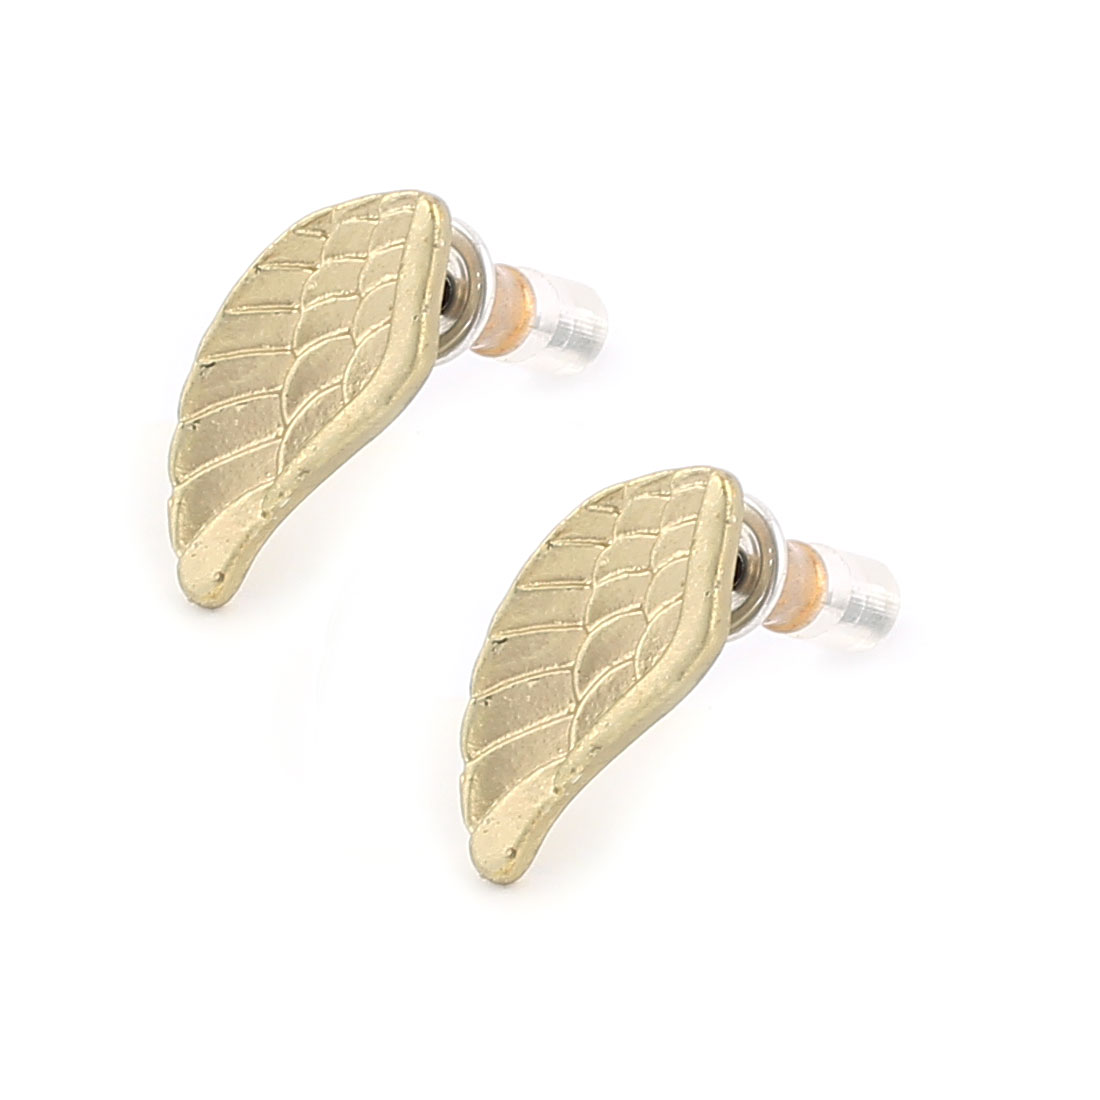 Pair Women Metal Wing Shape Design Pierced Stud Pin Ear Nail Earrings Earbobs Bronze Tone 1.4cm Length